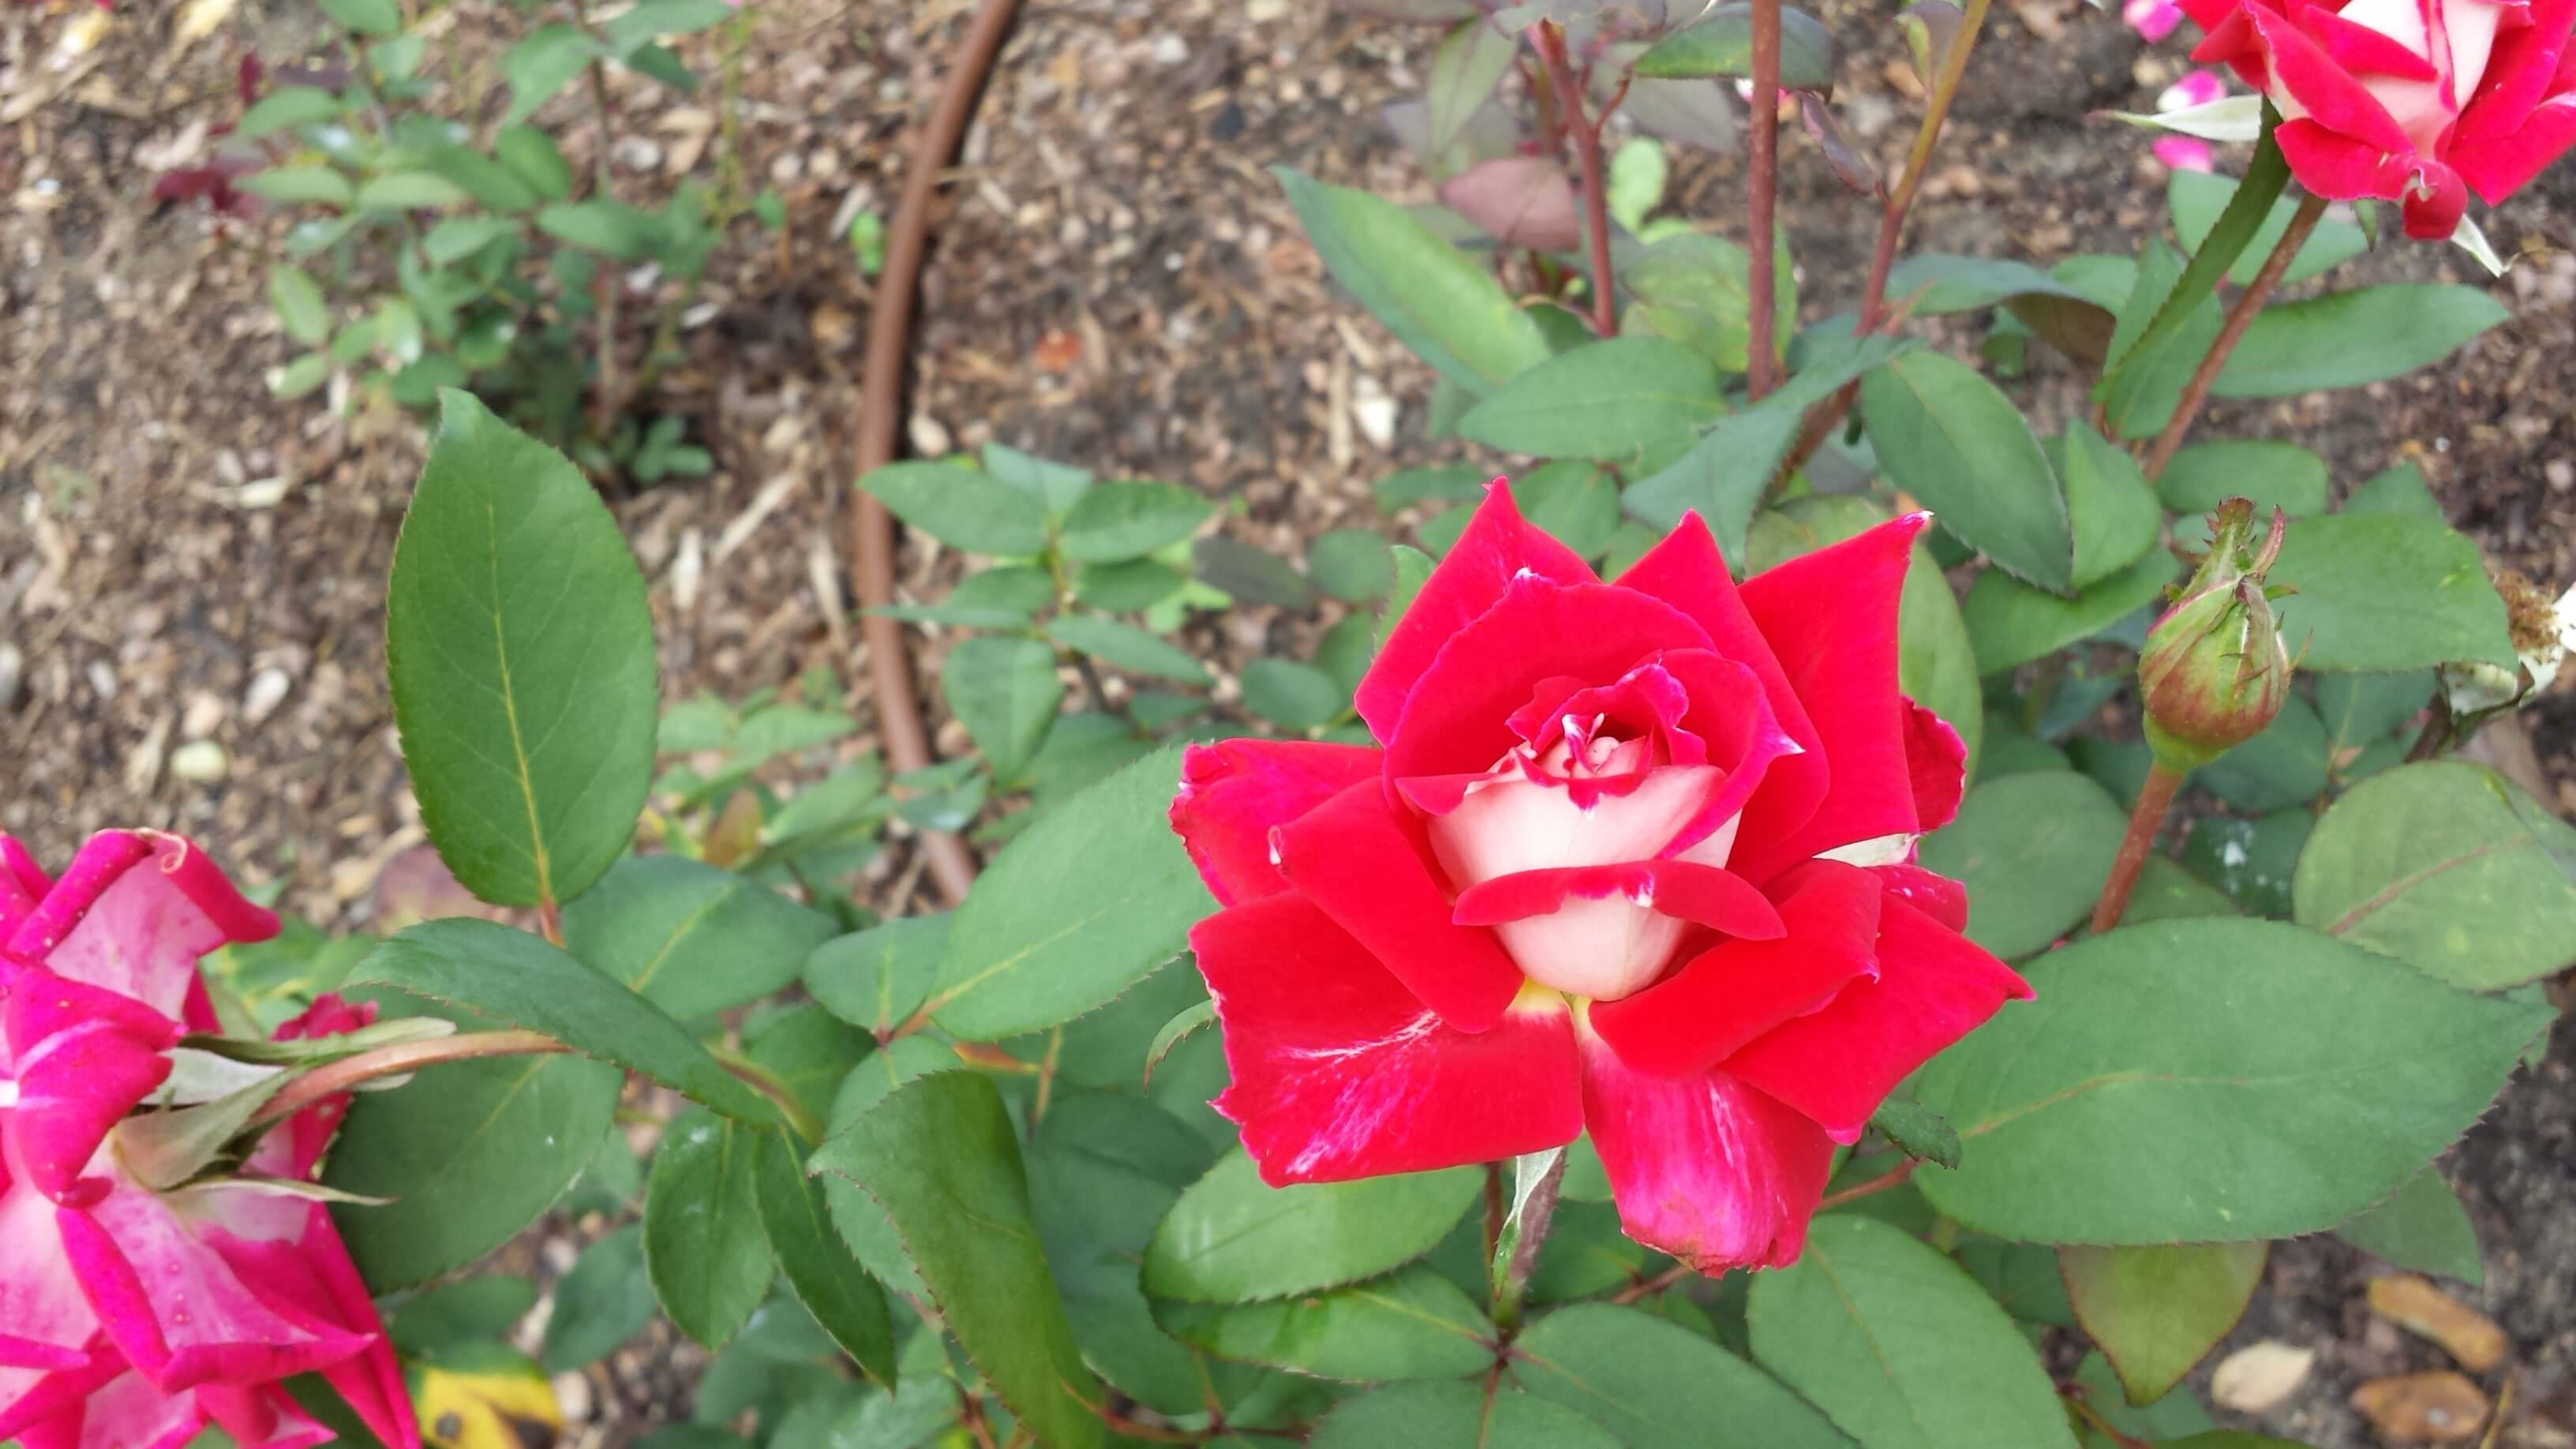 Striking red-with-white-middle rose